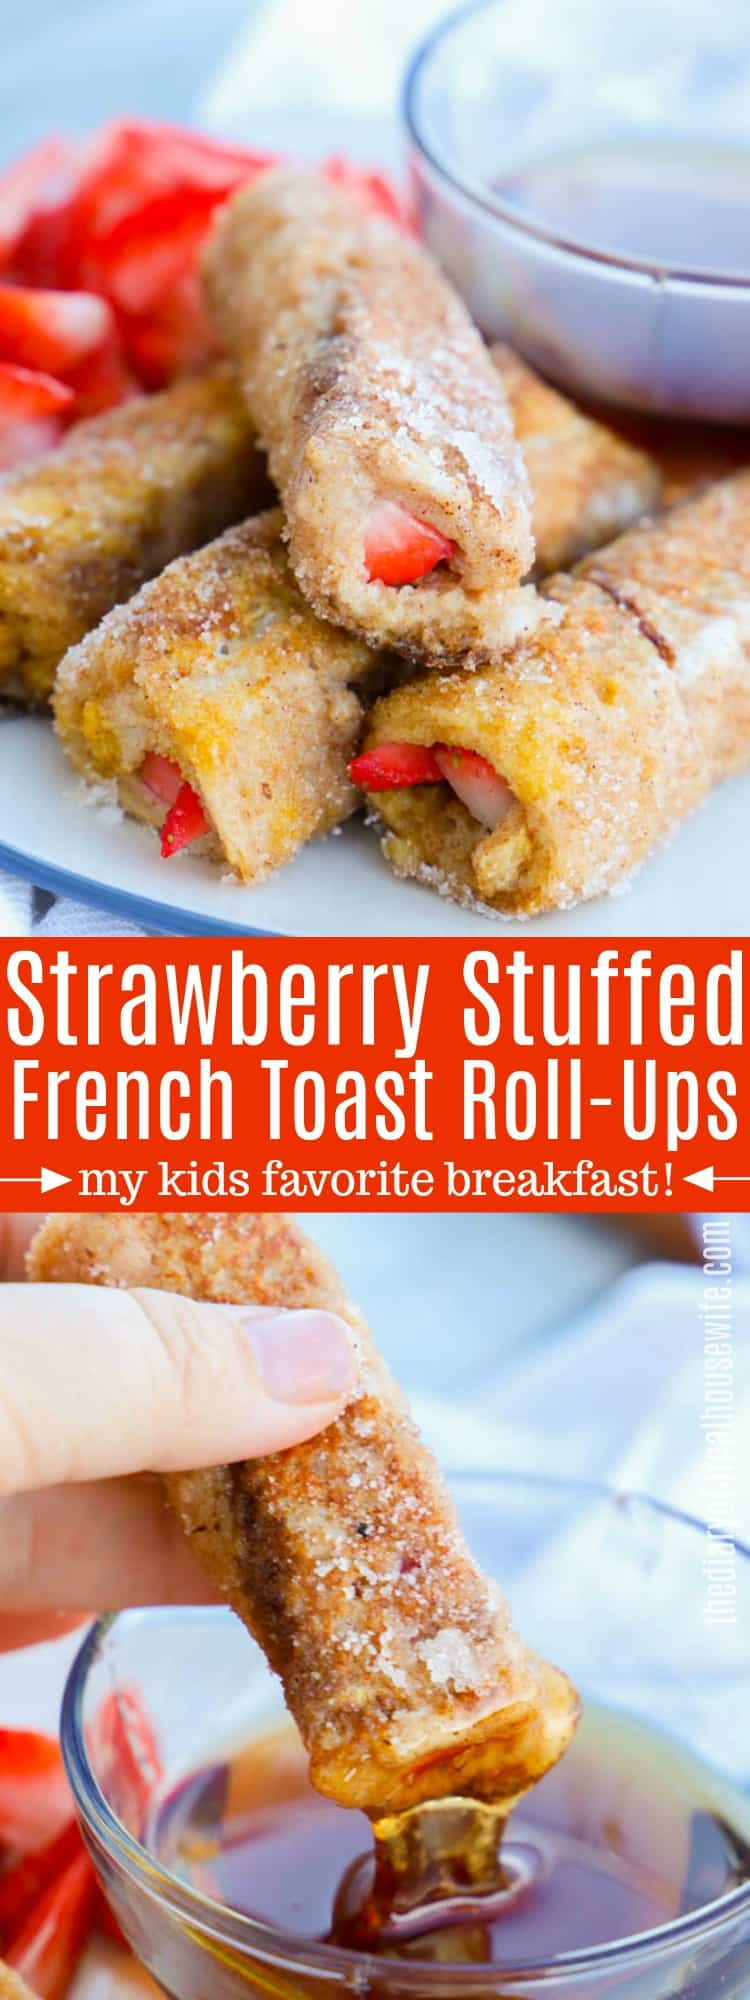 Strawberry Stuffed French Toast Roll-Ups